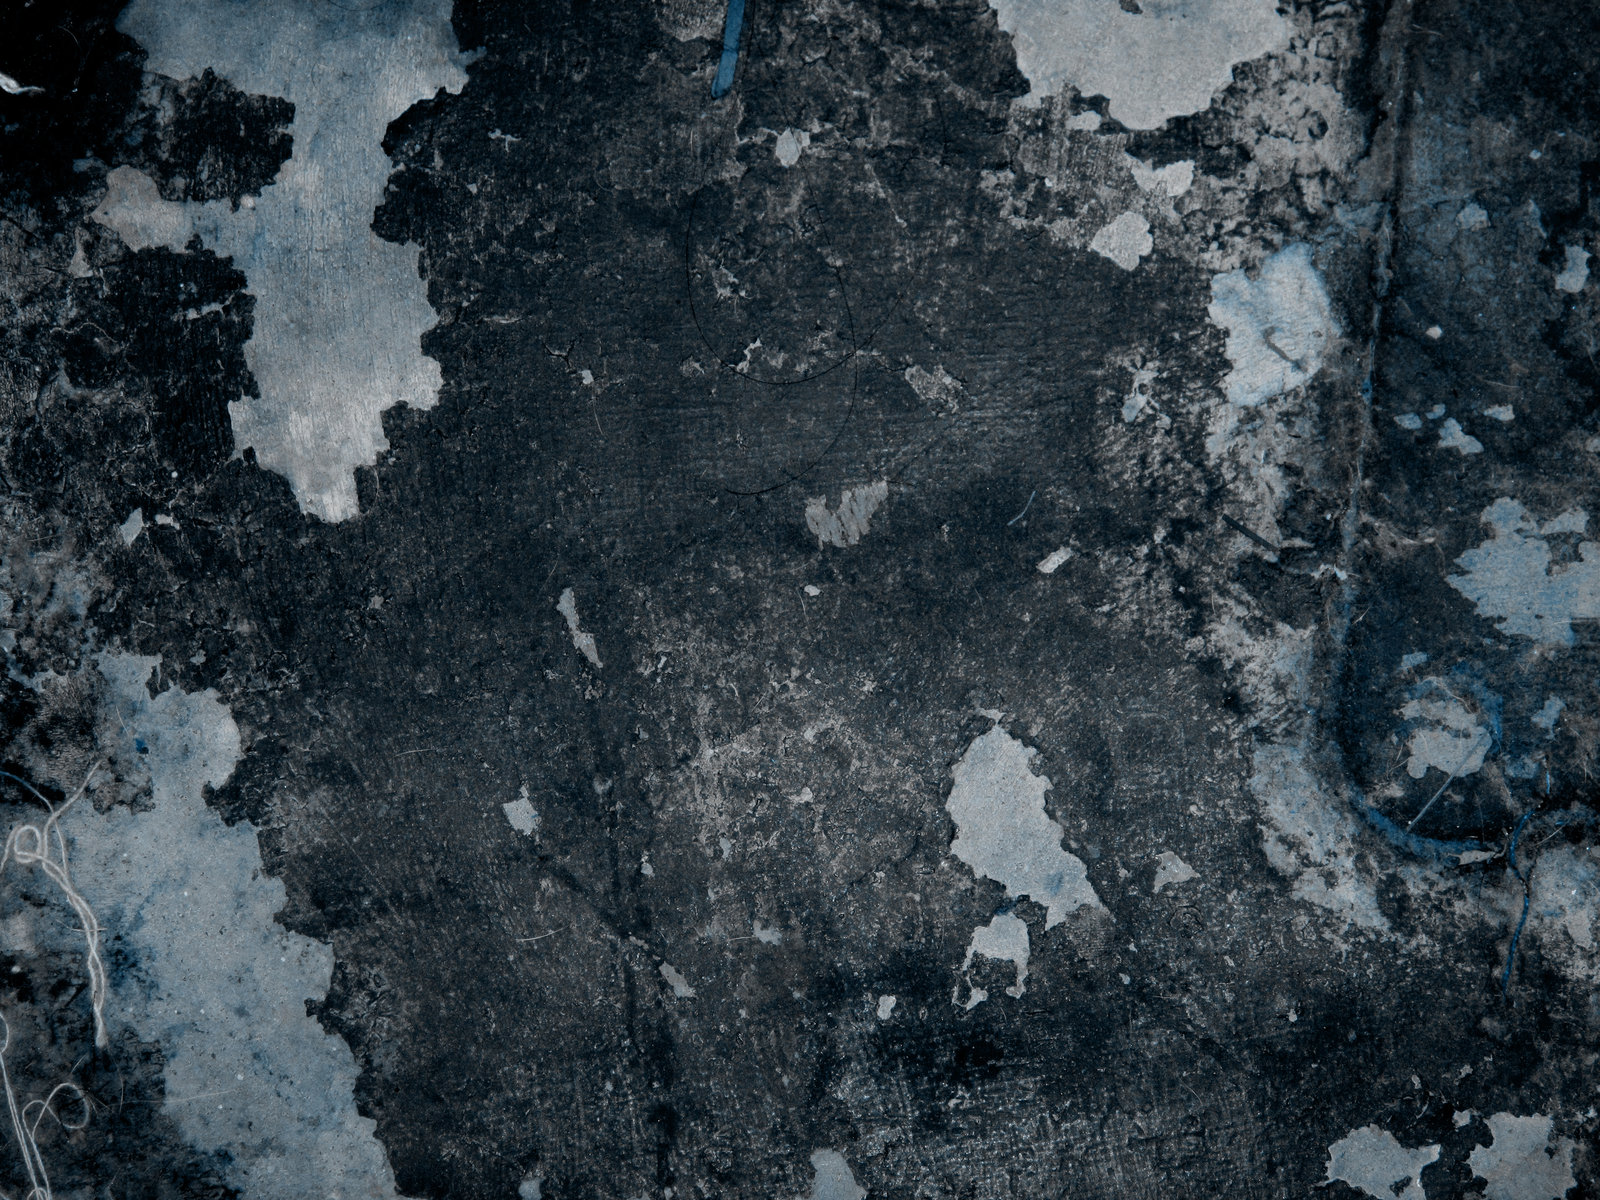 Backgrounds Tumblr Grunge Images amp Pictures   Becuo 1600x1200